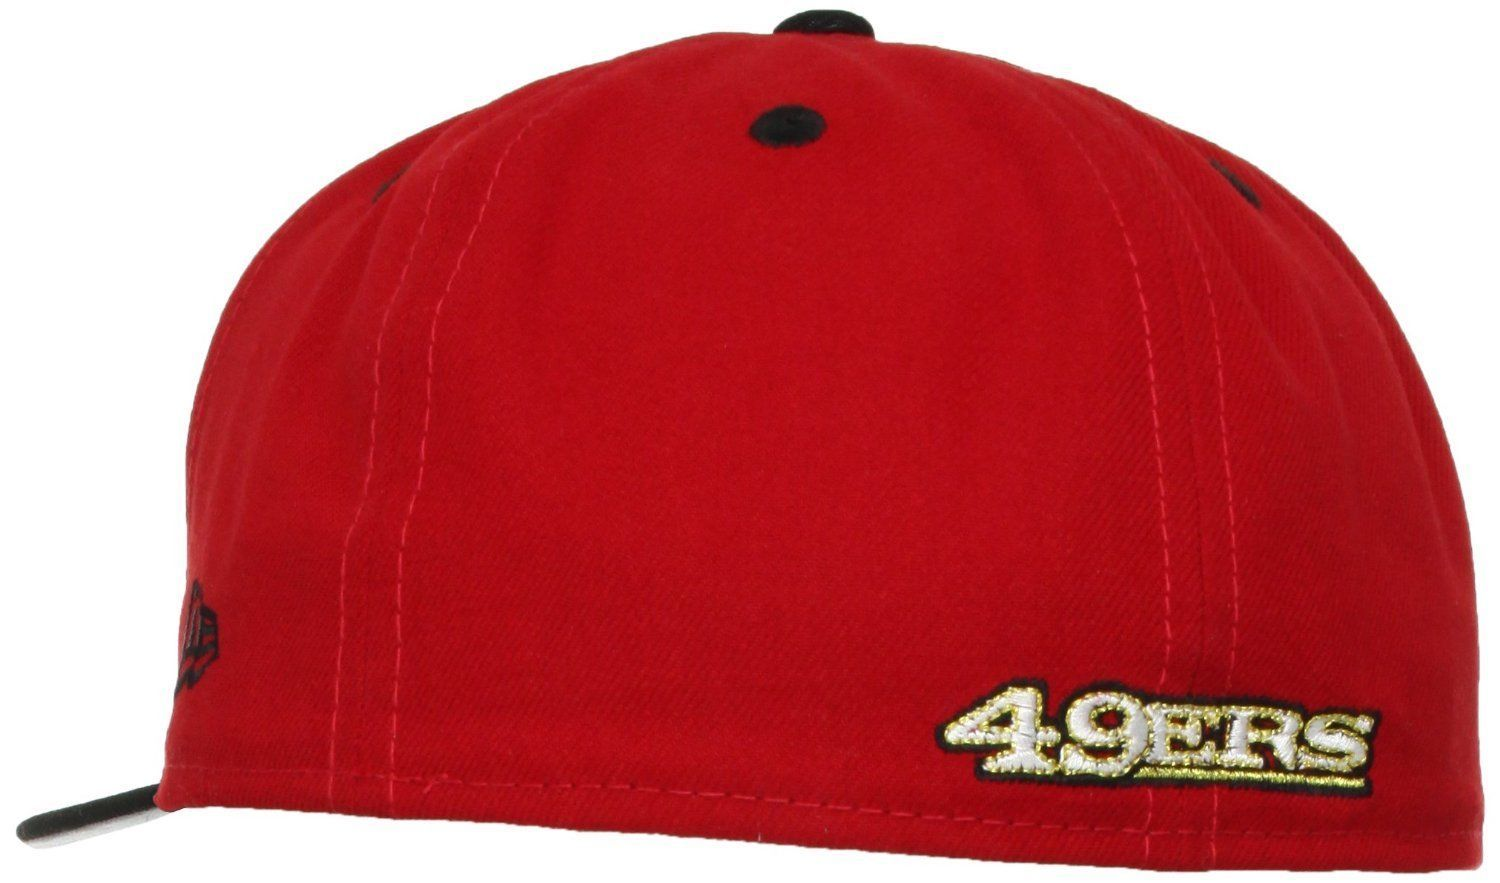 New Era 59Fifty NFL San Francisco 49ers 2 Tone Red/Black Fitted Cap